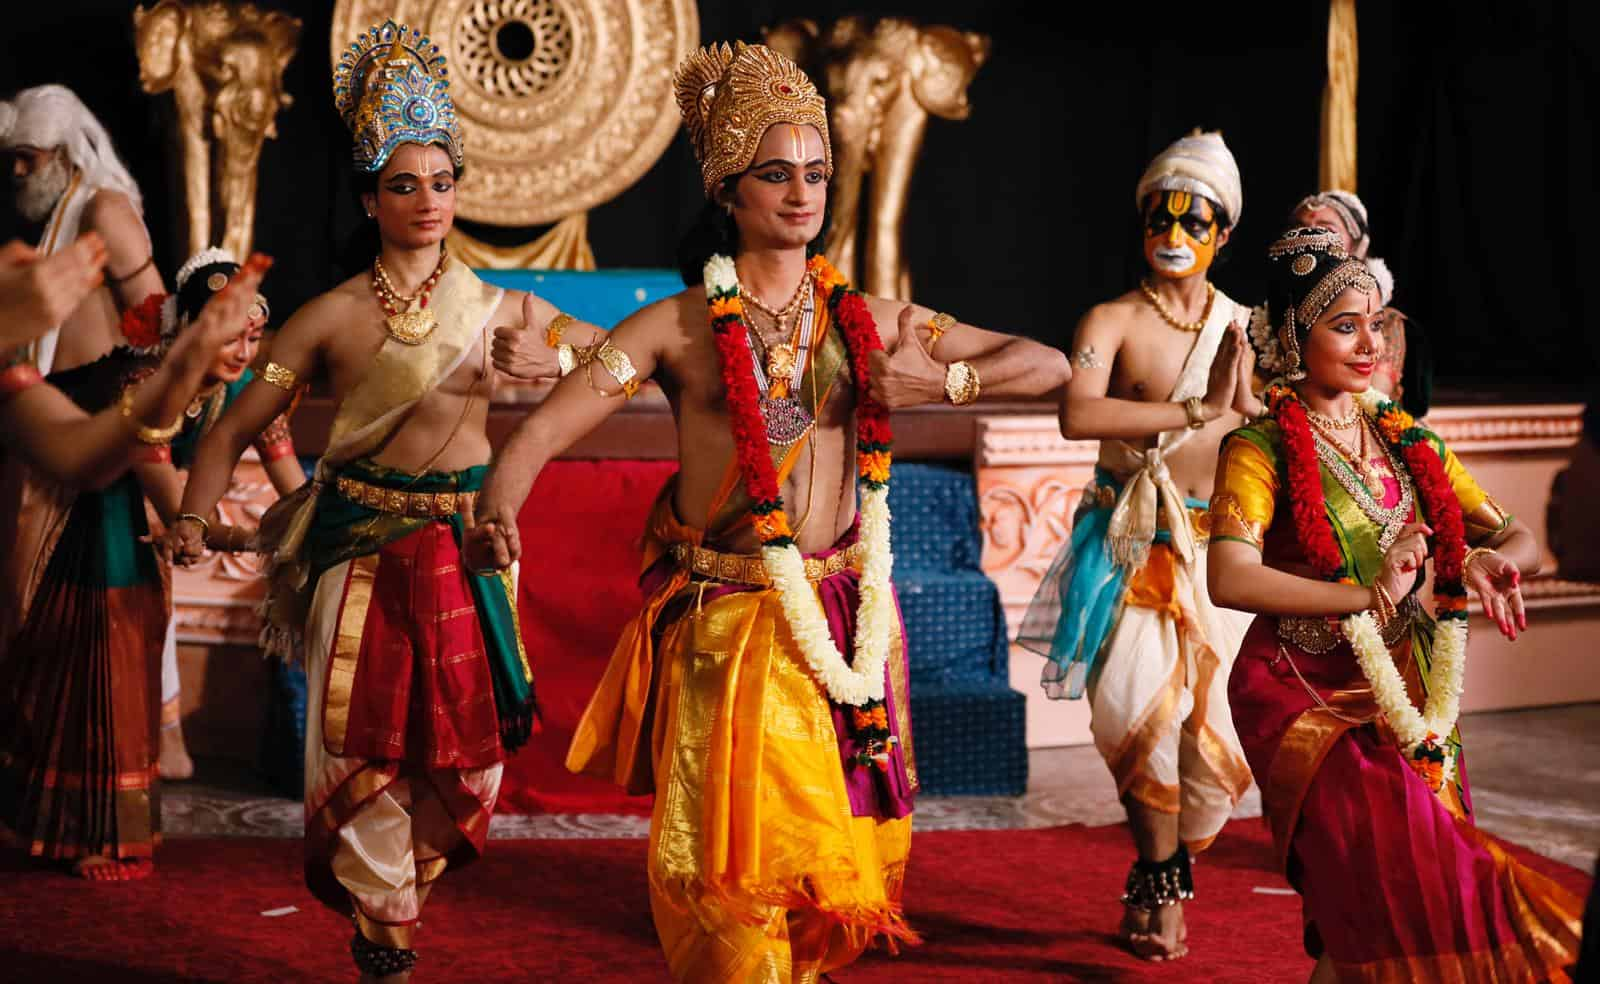 SIFAS - Classical Dance 2. Image credit to Indian Heritage Centre